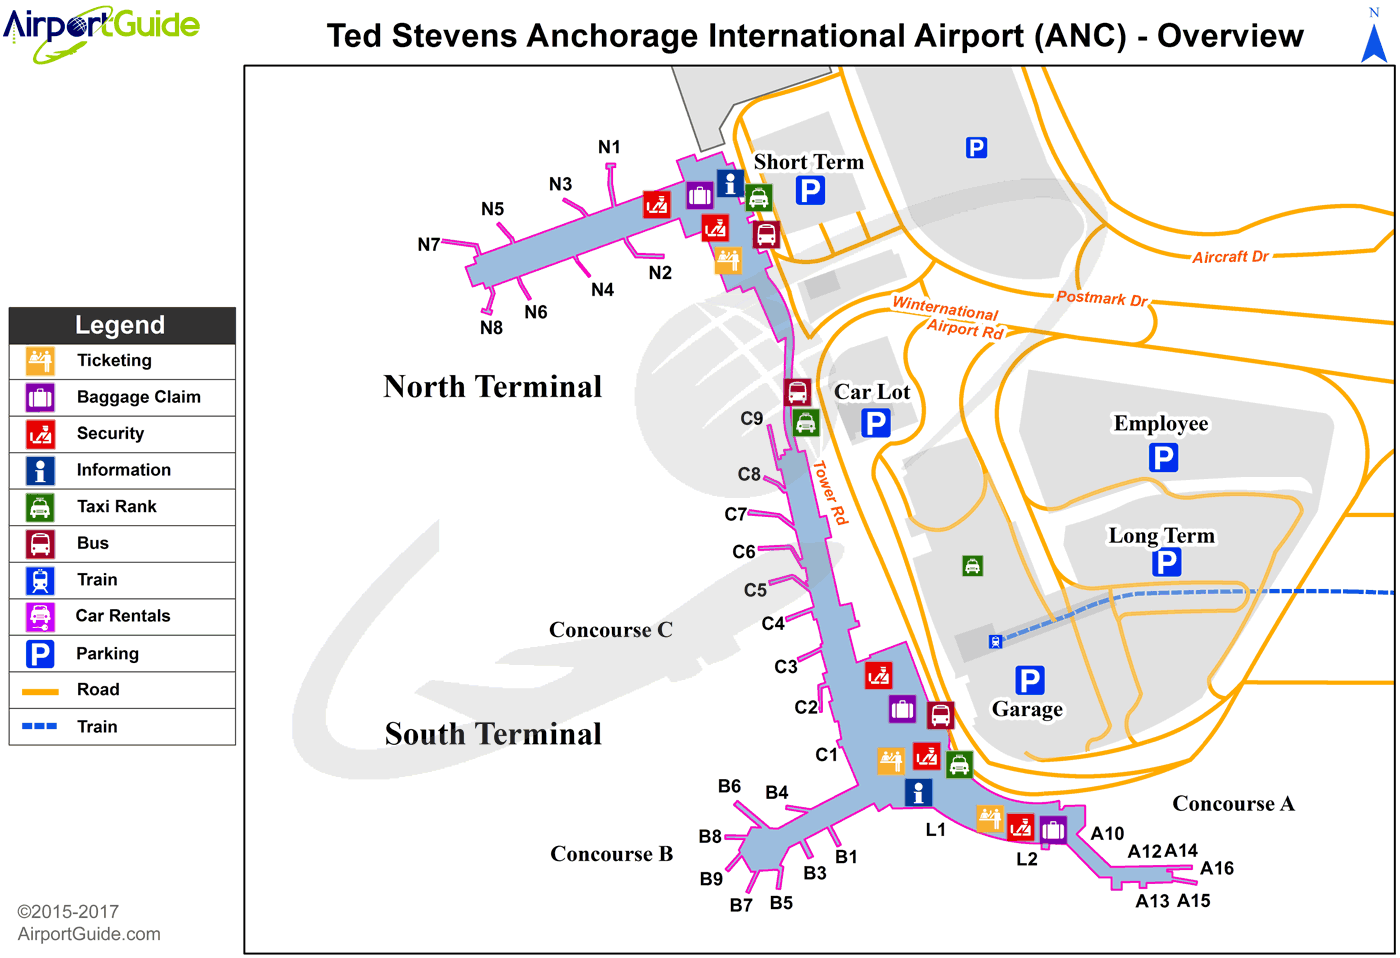 Anchorage - Ted Stevens Anchorage International (ANC) Airport Terminal Map - Overview